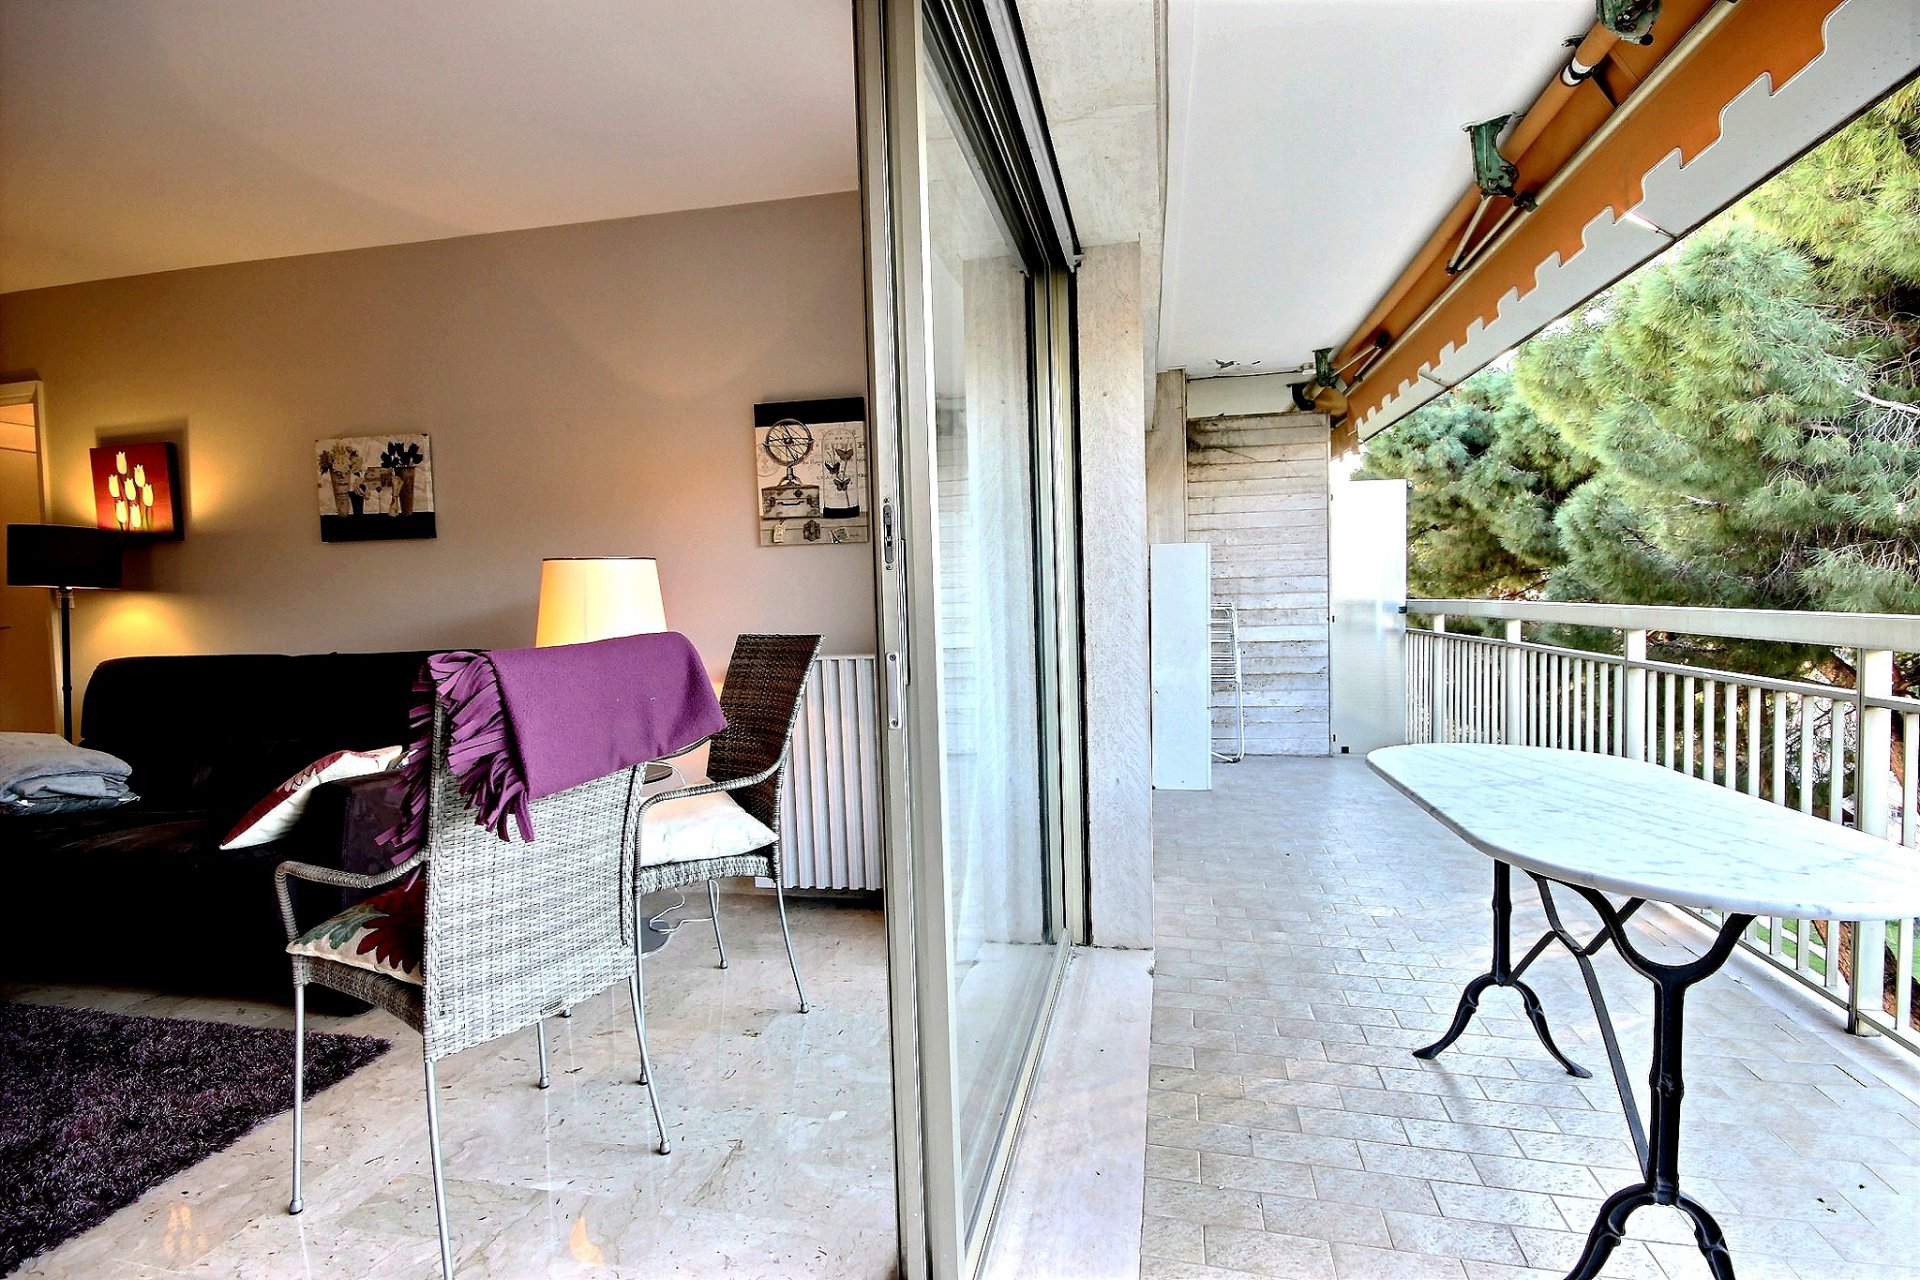 Cannes Basse Californie property for sale with large terrace